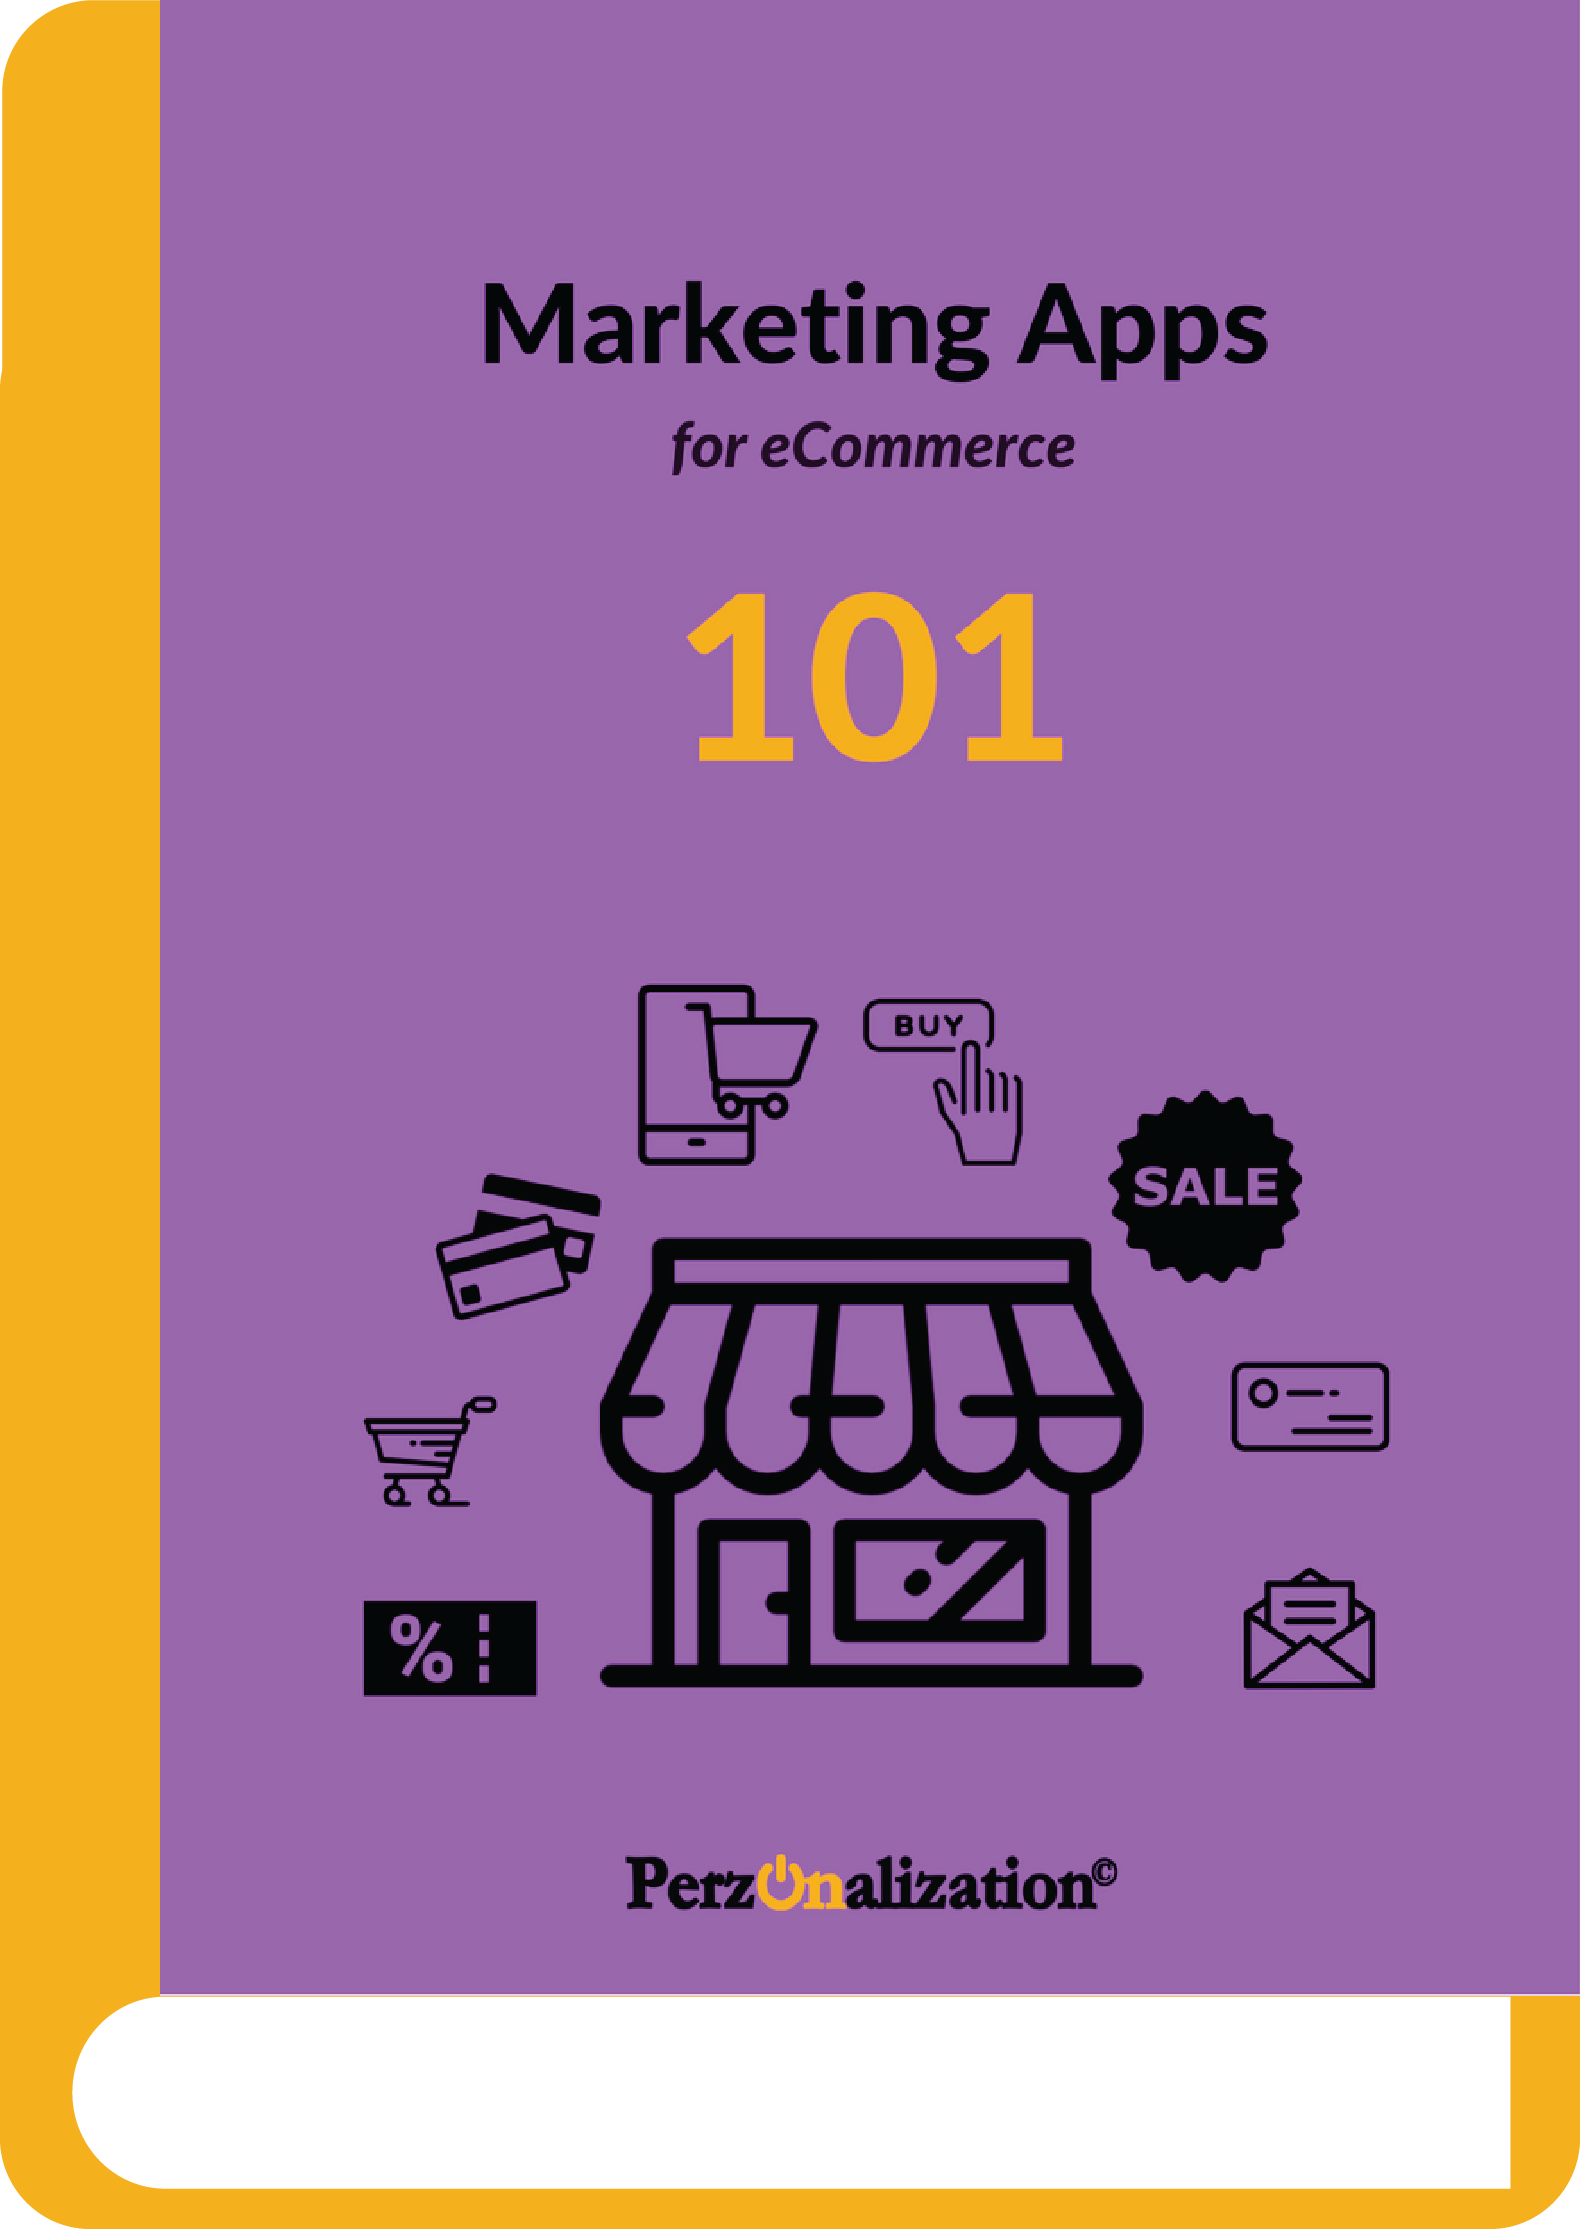 Marketing Apps for eCommerce 101 - an eBook for SMB online stores